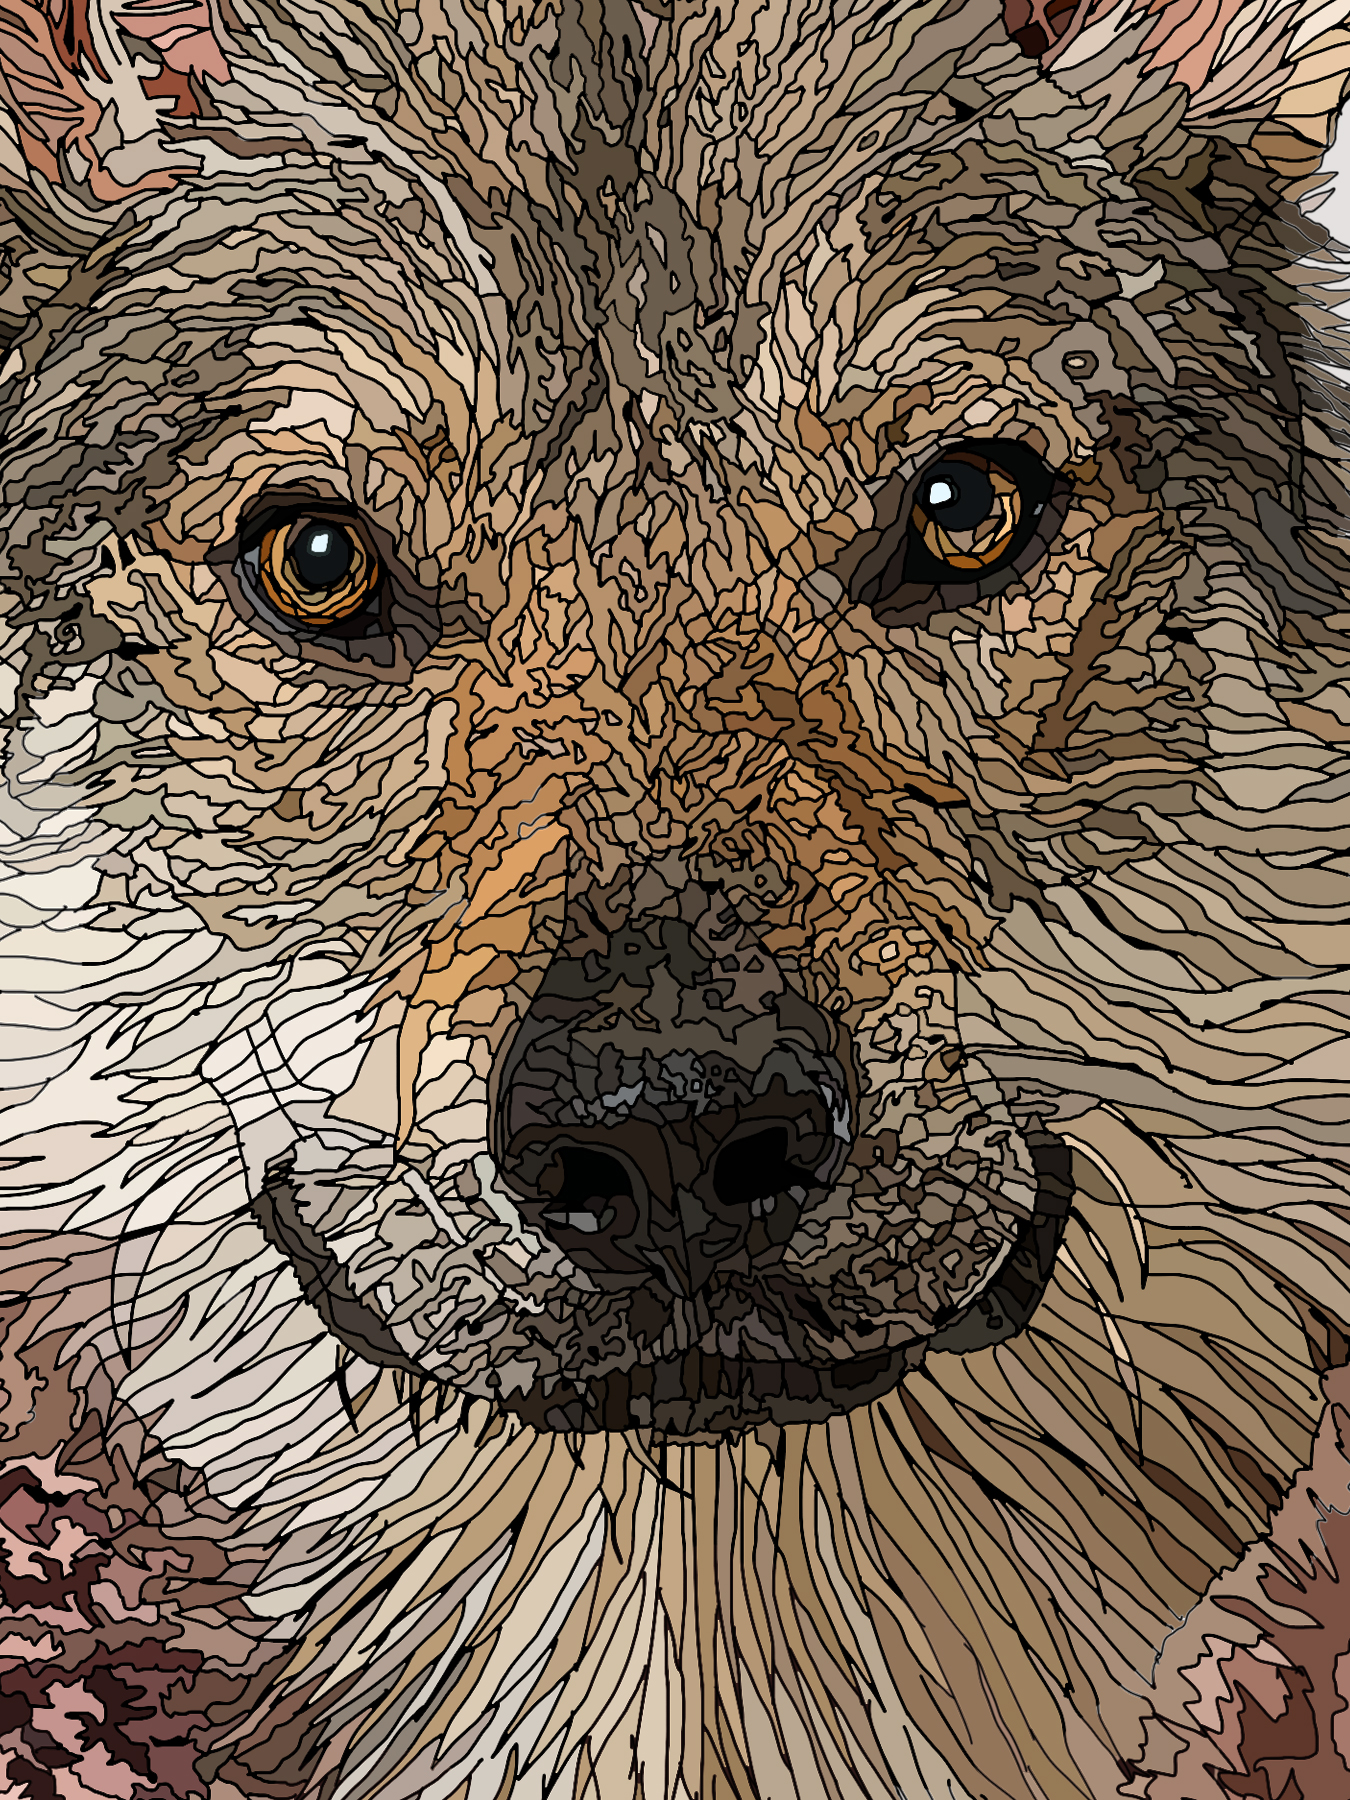 Bad Moon Rising - Male Wolf human hybrid graphic fine art (detail)